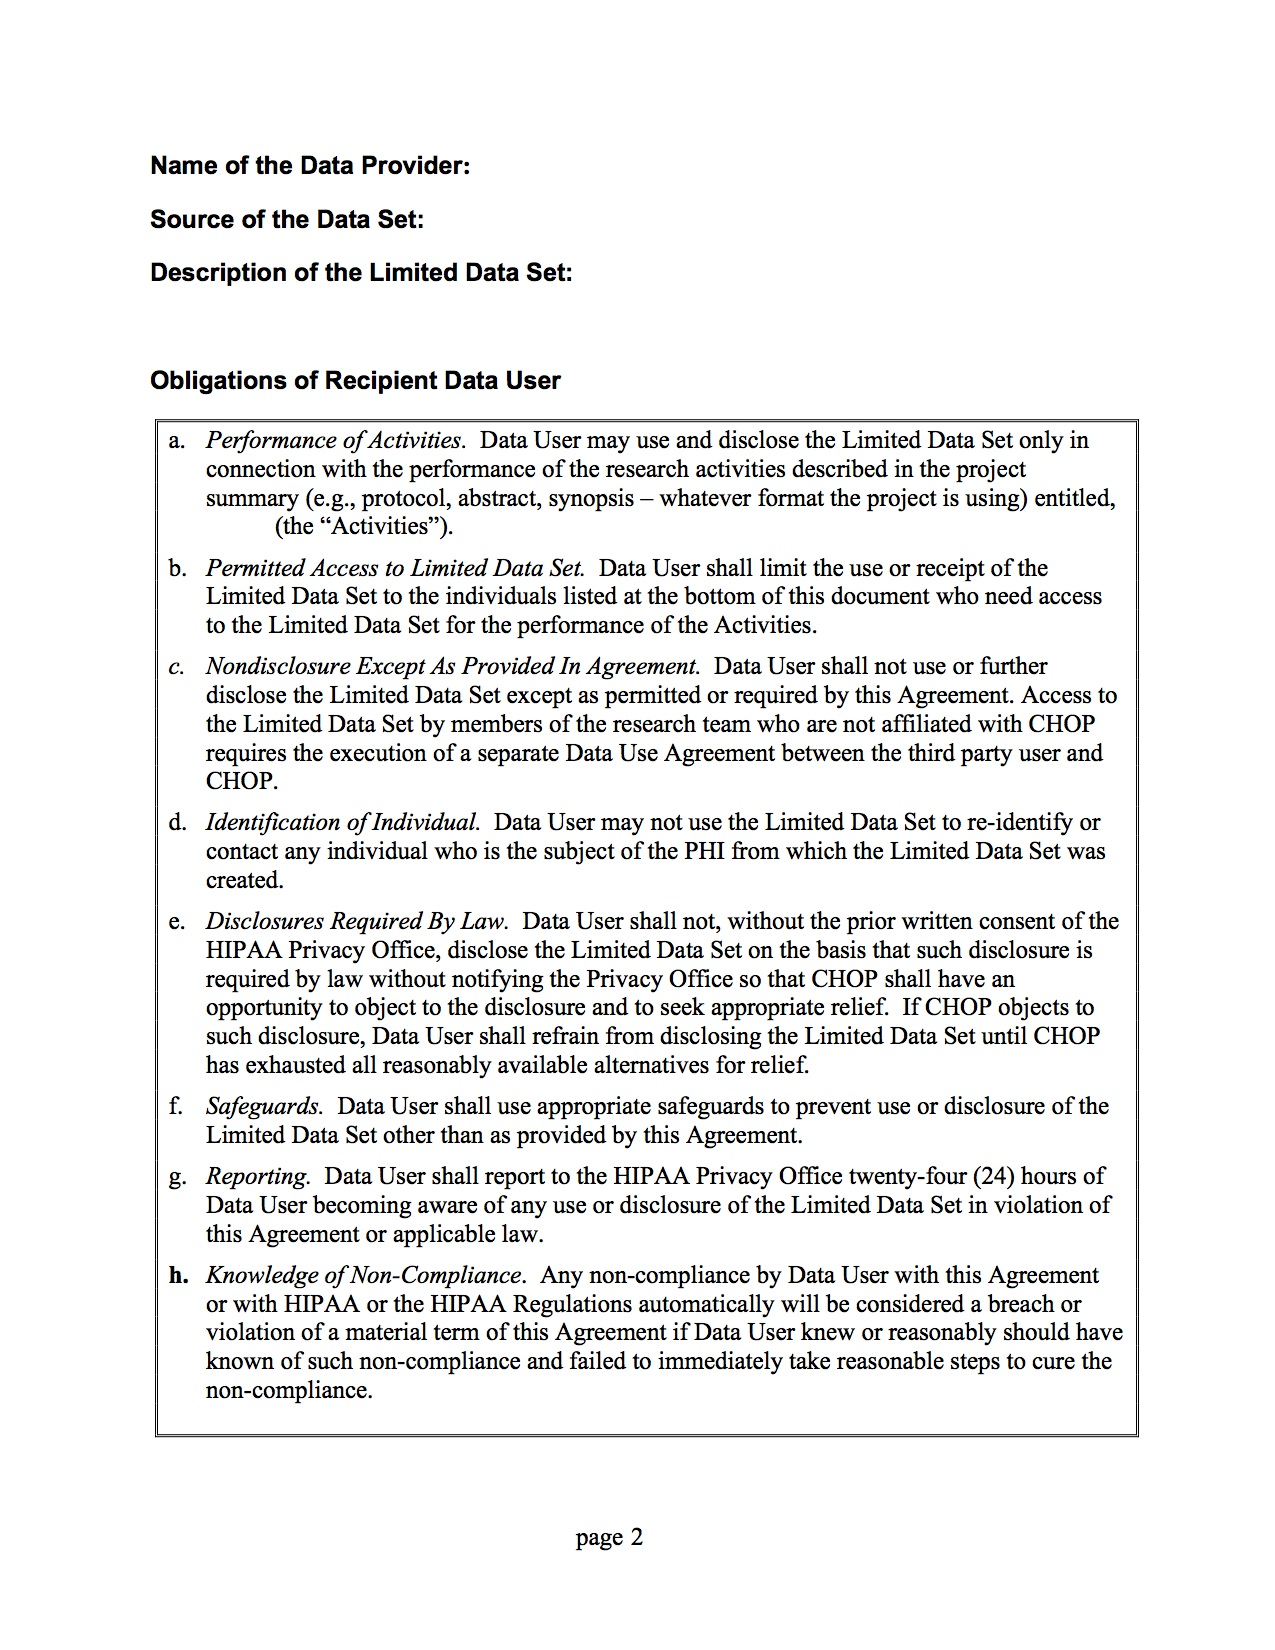 Data Use Agreement - Page 2